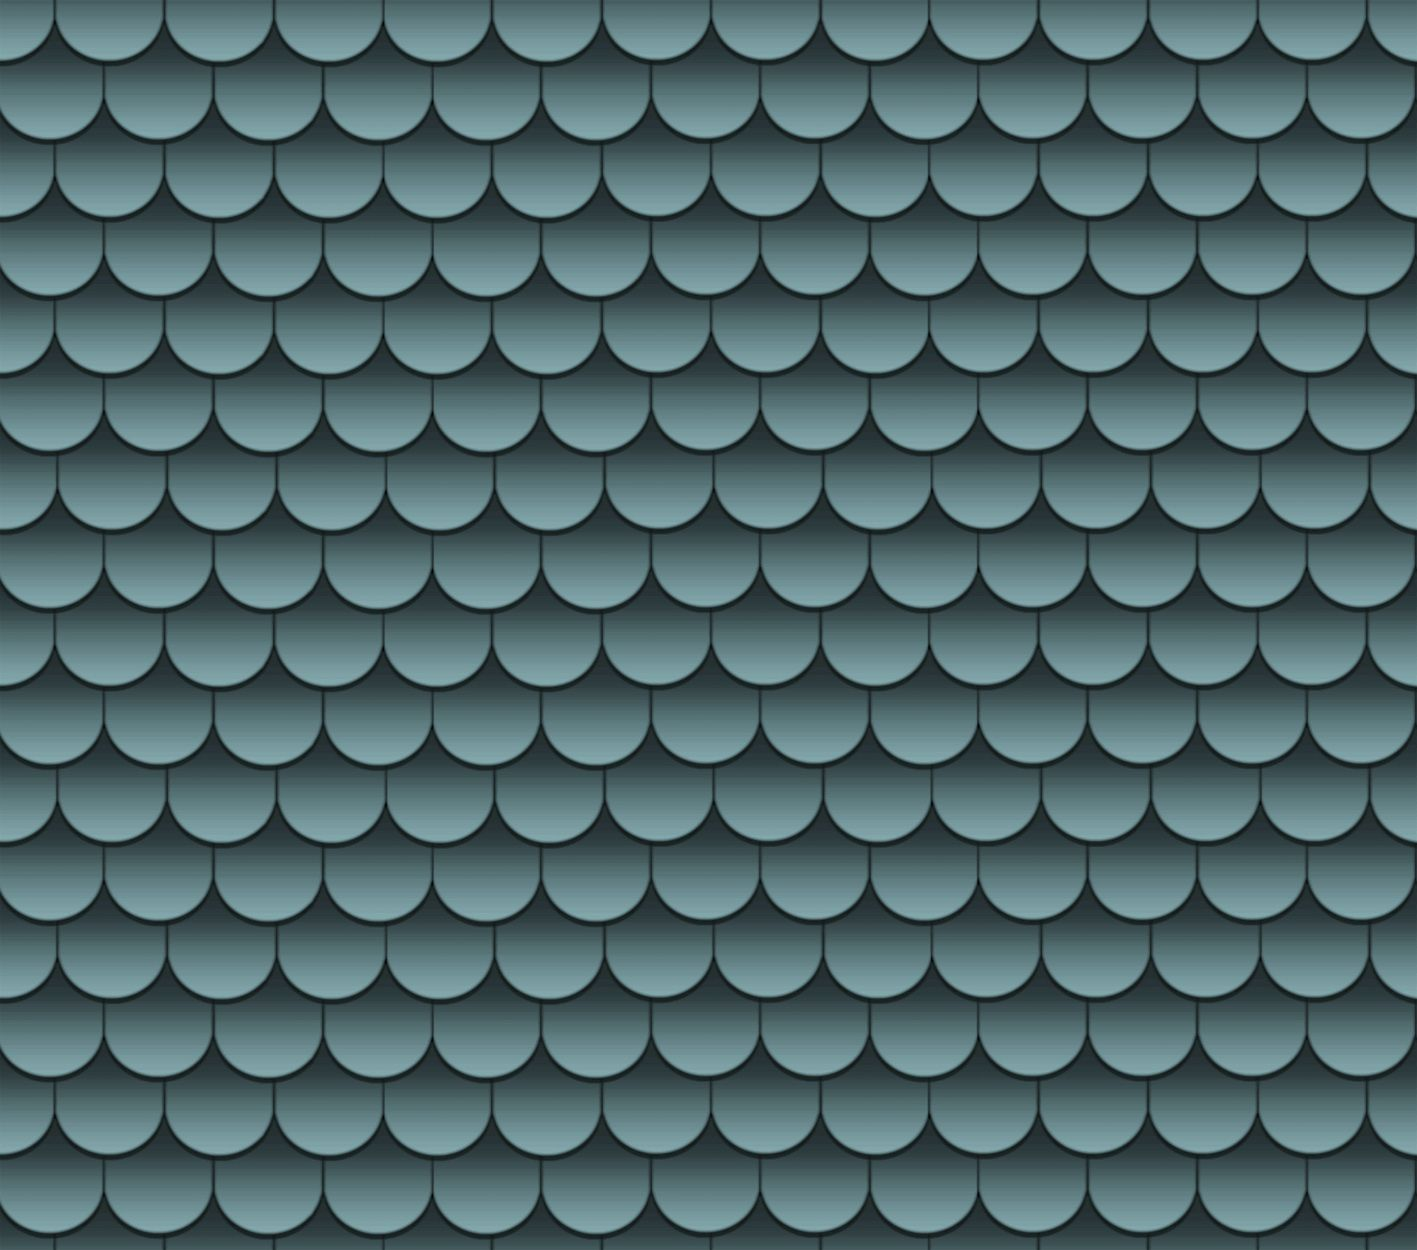 Blue Scallop Roof Shingles